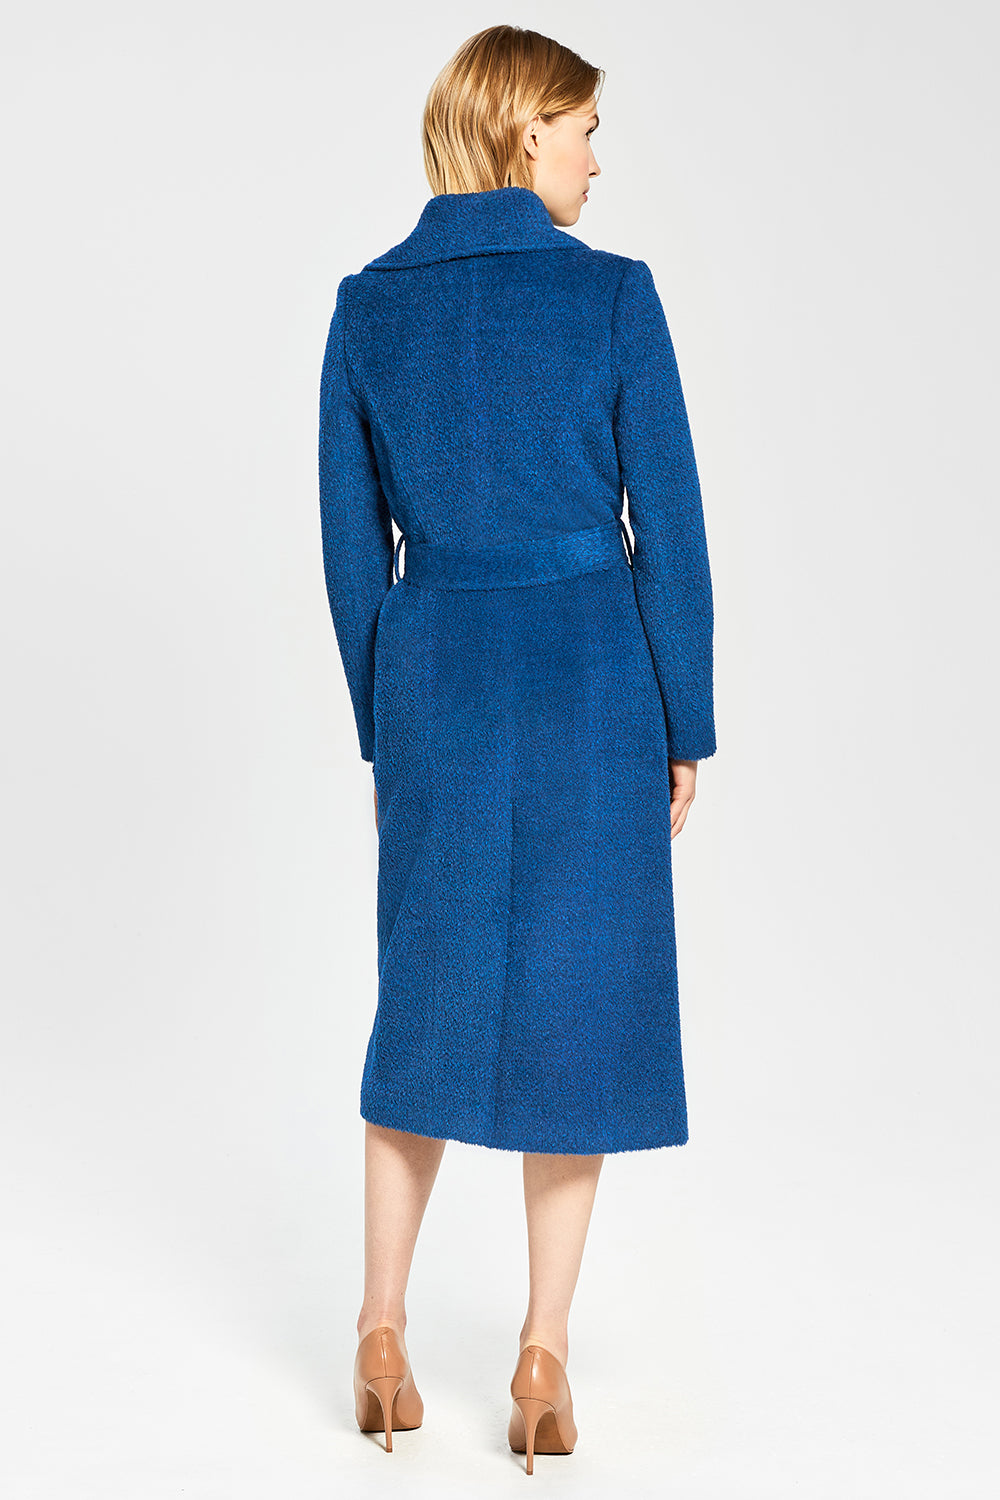 Sentaler Bouclé Alpaca Long Wide Collar Wrap Coat featured in Bouclé Alpaca and available in Classic Blue. Seen from back.